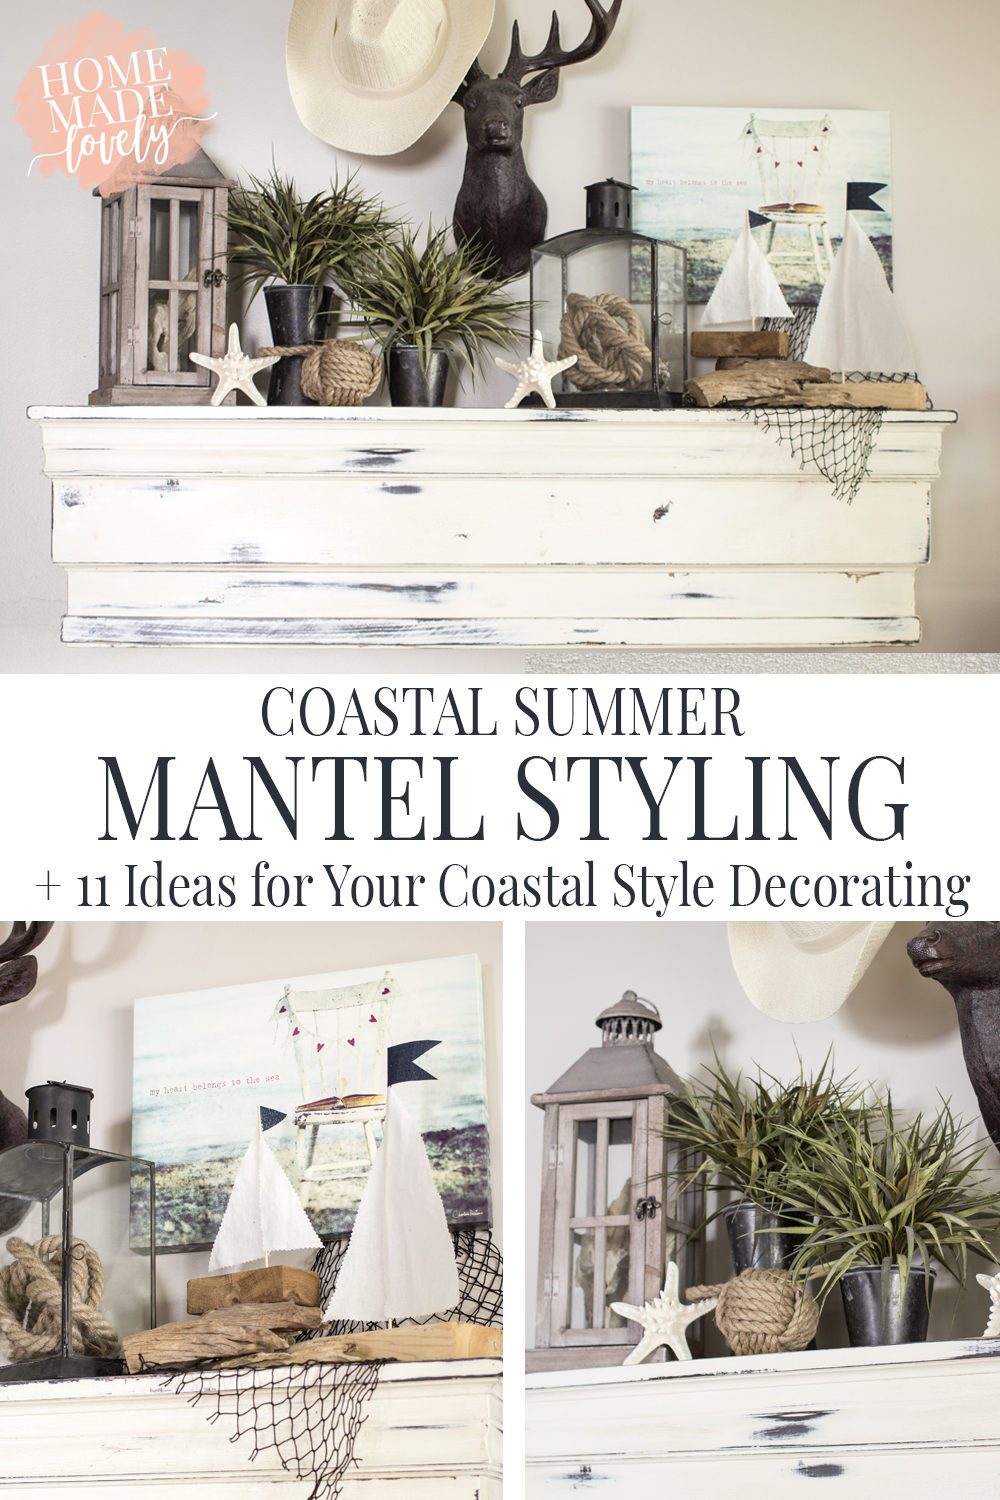 Our wall mantel is the first place to get hit with summer decor. And this year it's all about the coastal summer mantel. Plus 11 Ideas for your own coastal style decorating!